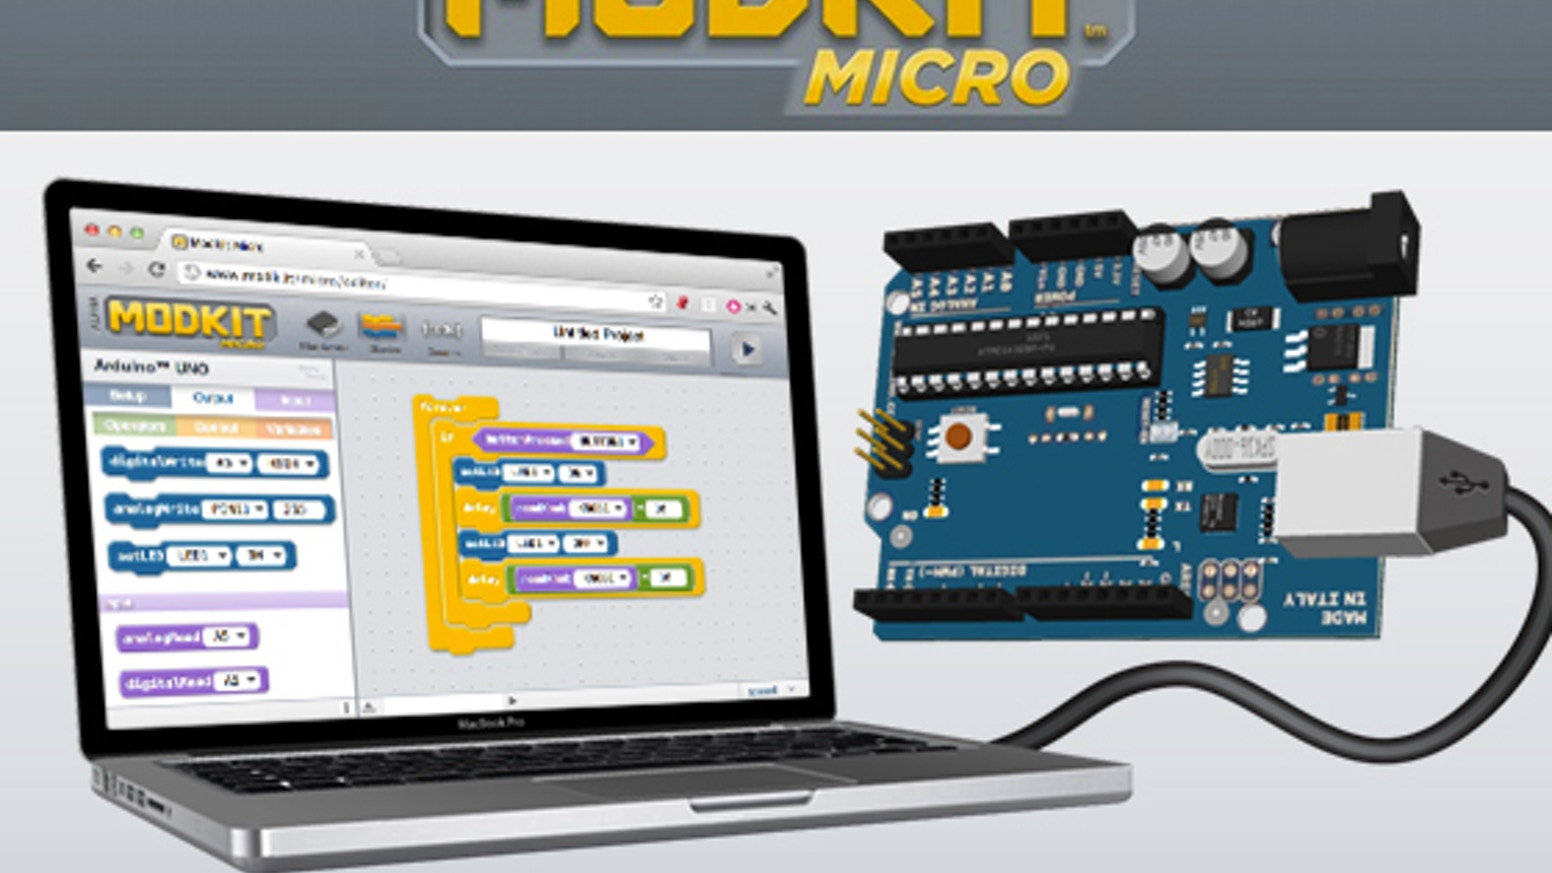 Modkit Micro: The Easiest Way to Program Microcontrollers by Modkit